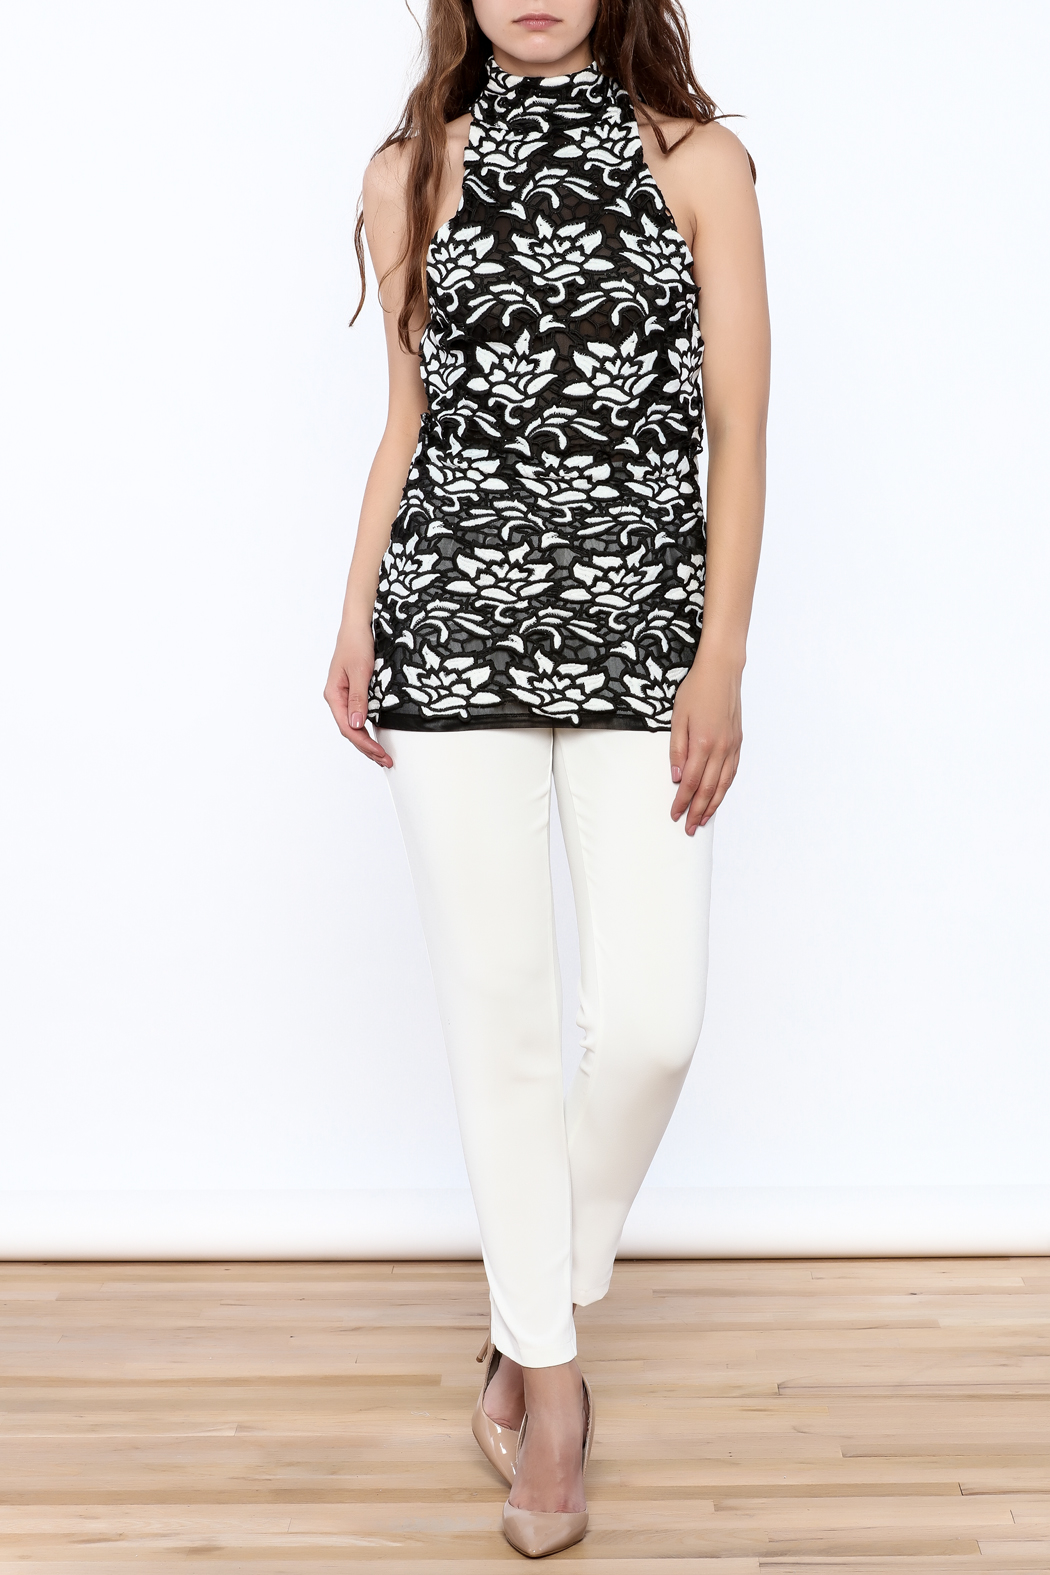 Julian Chang Black Floral Sleeveless Top - Front Full Image